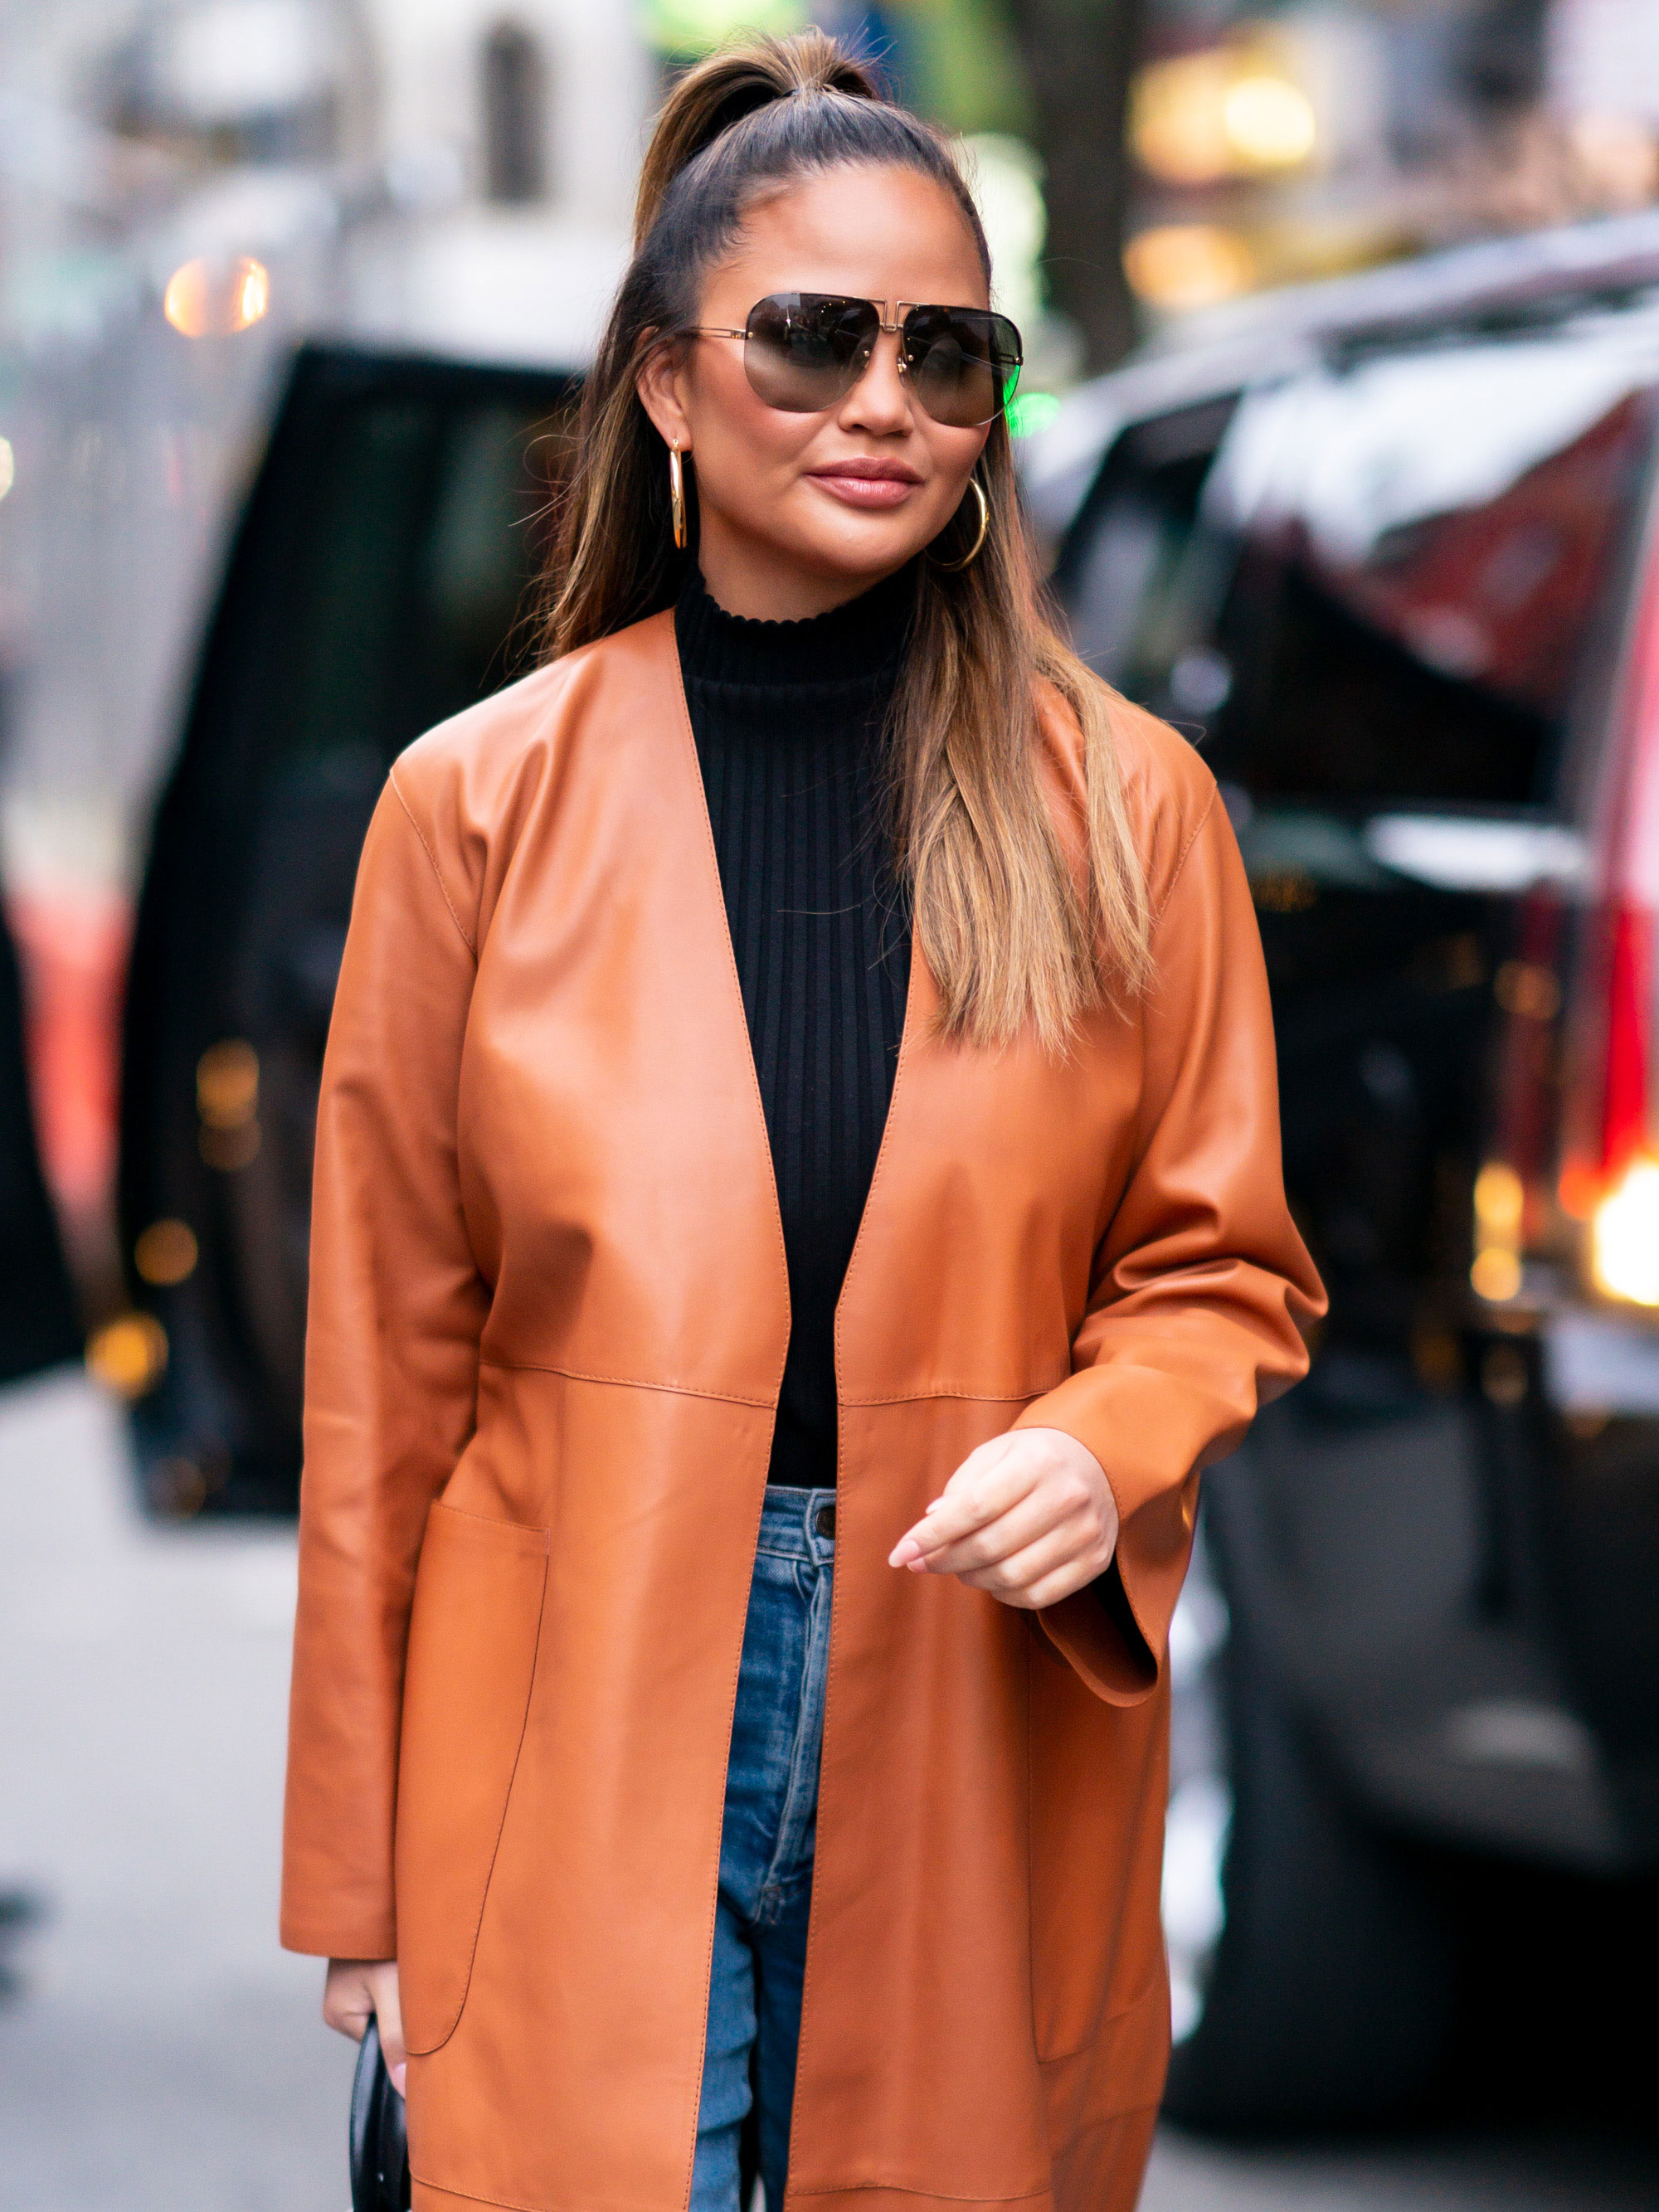 Chrissy Teigen reveals the sneaky way celebrities go unspotted at airports